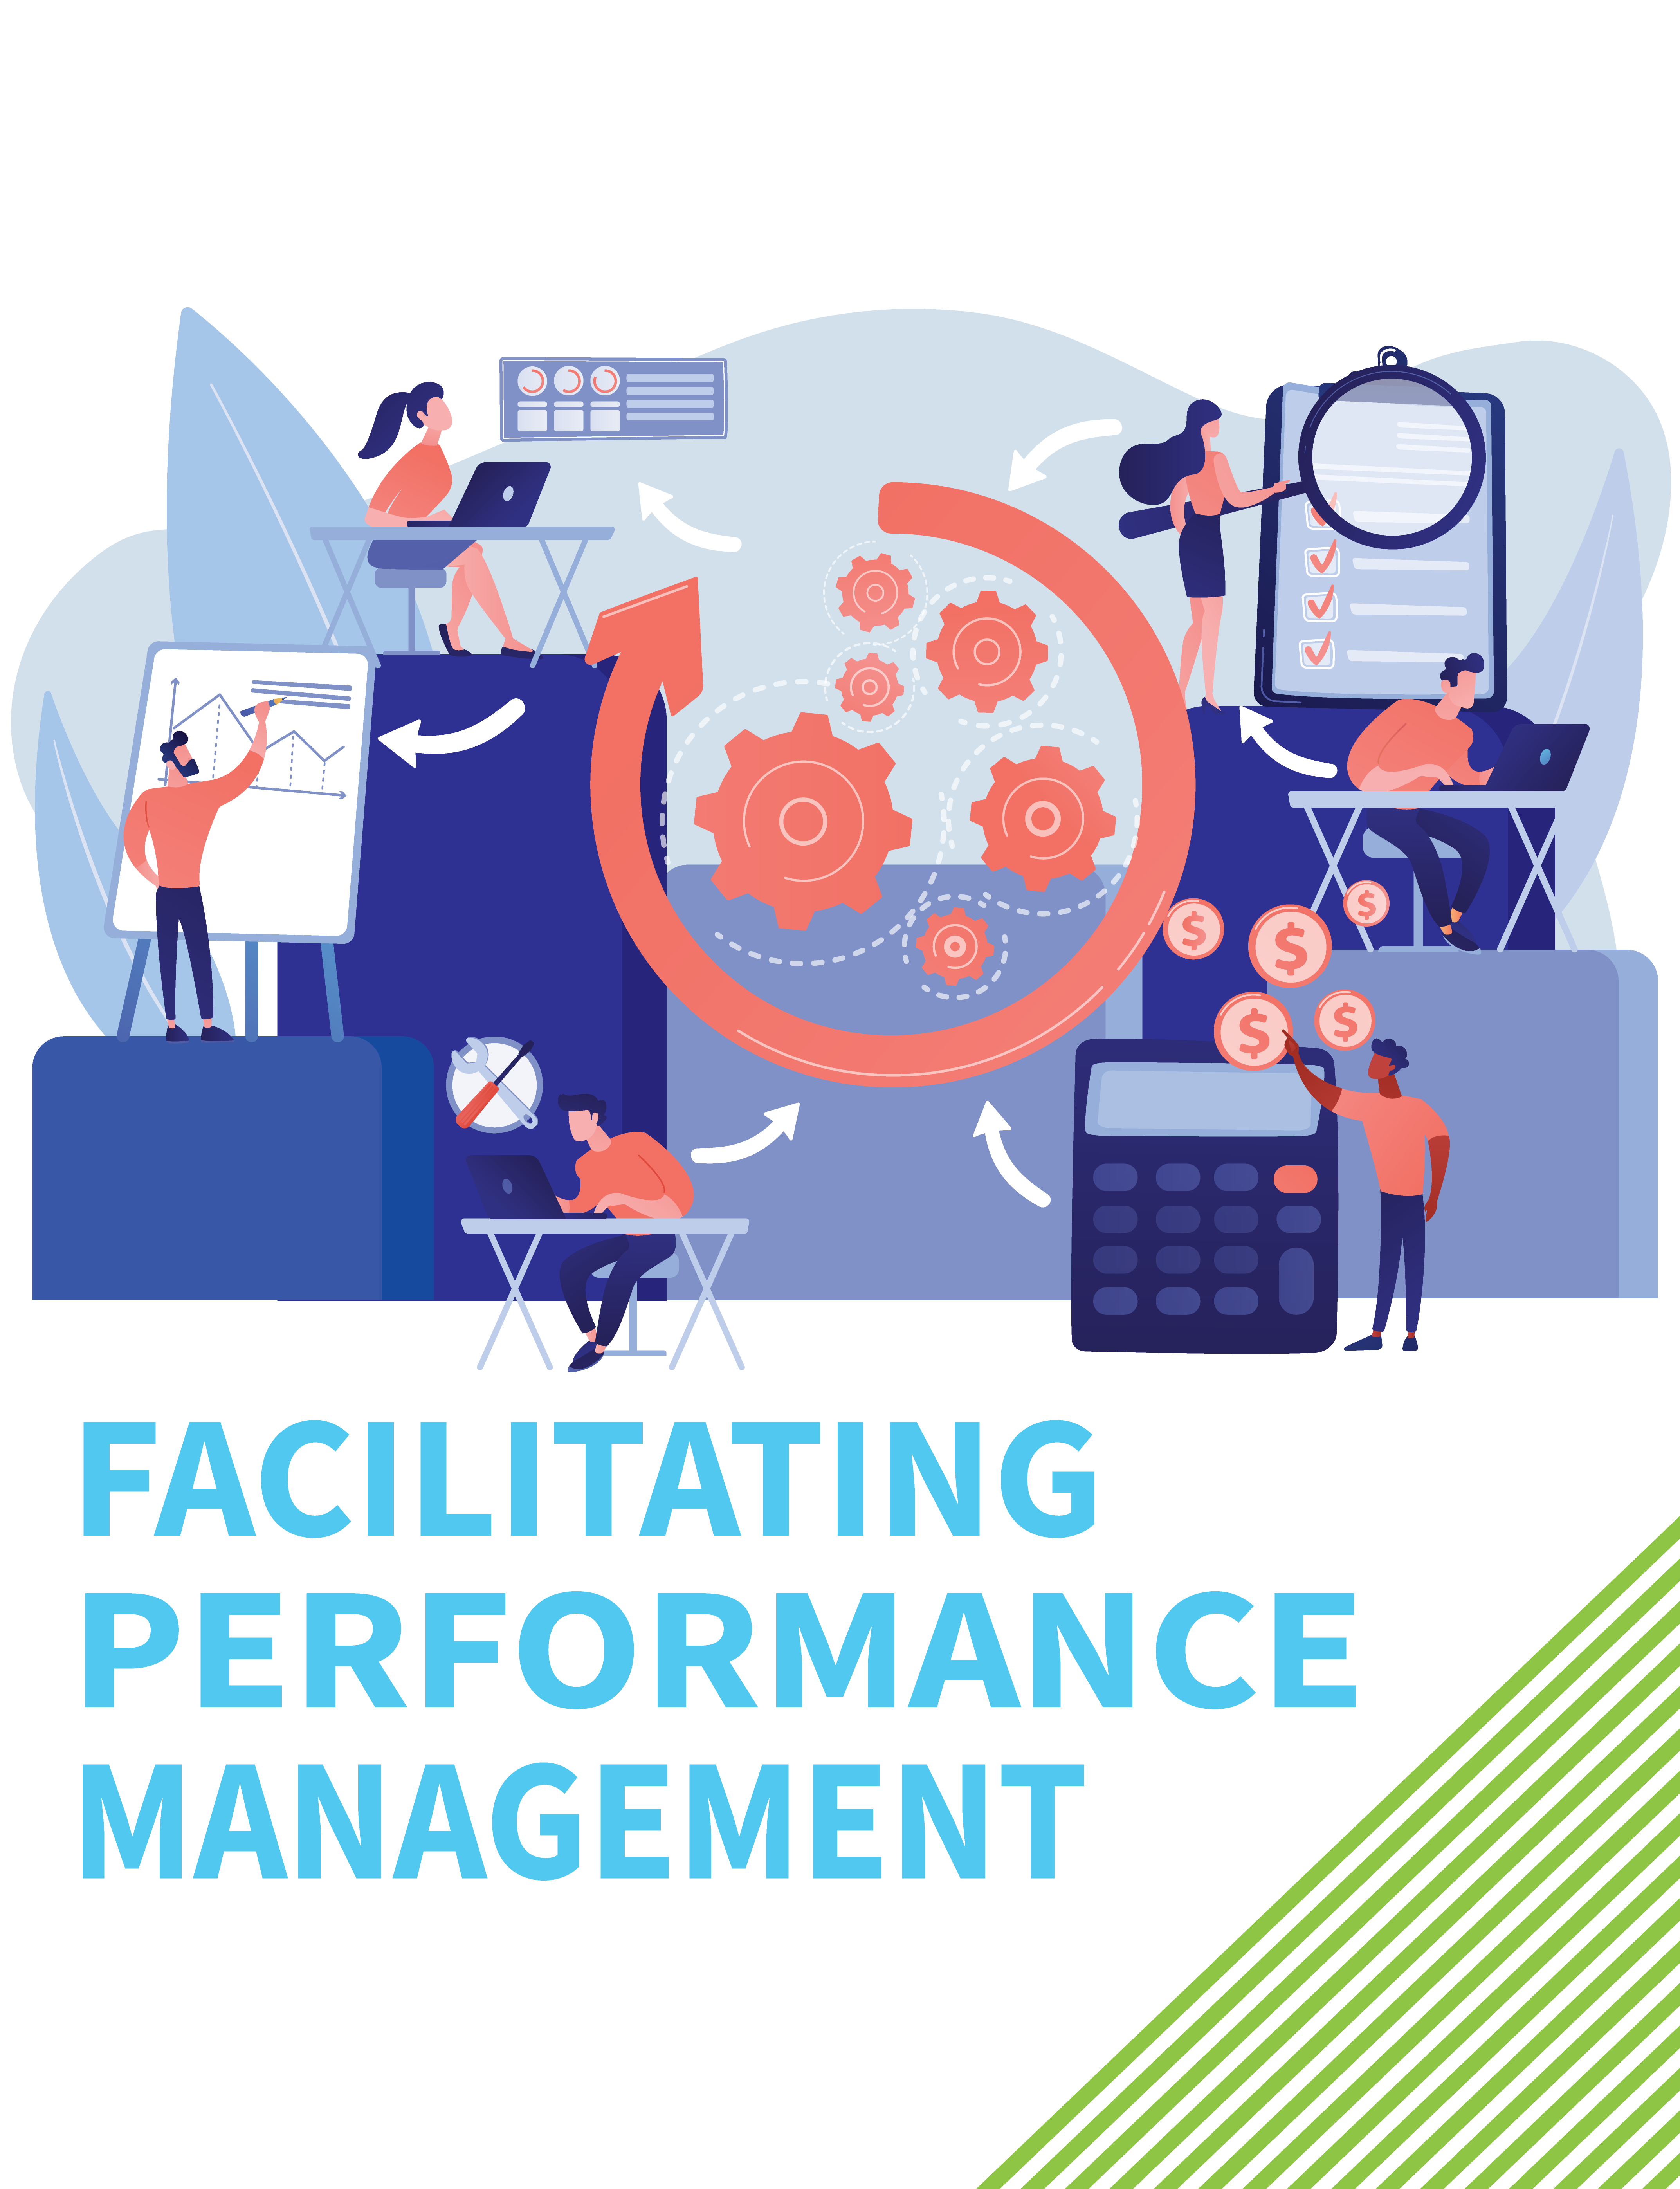 performance management - Online Learning